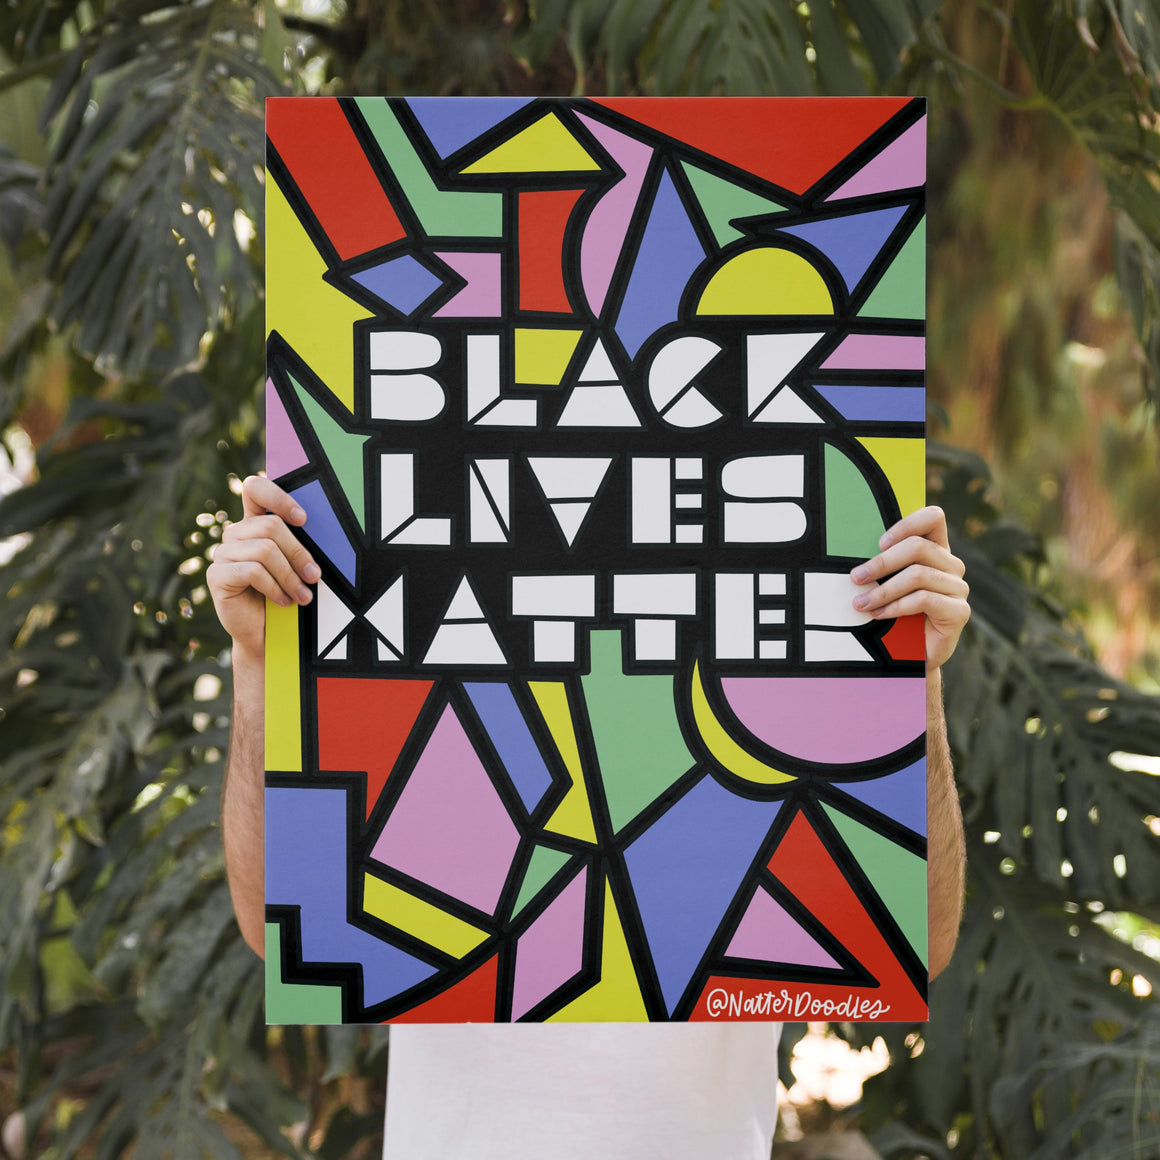 Social Change Coloring Pages + Coloring Protest Signs - Fundraiser for Black Visions Collective